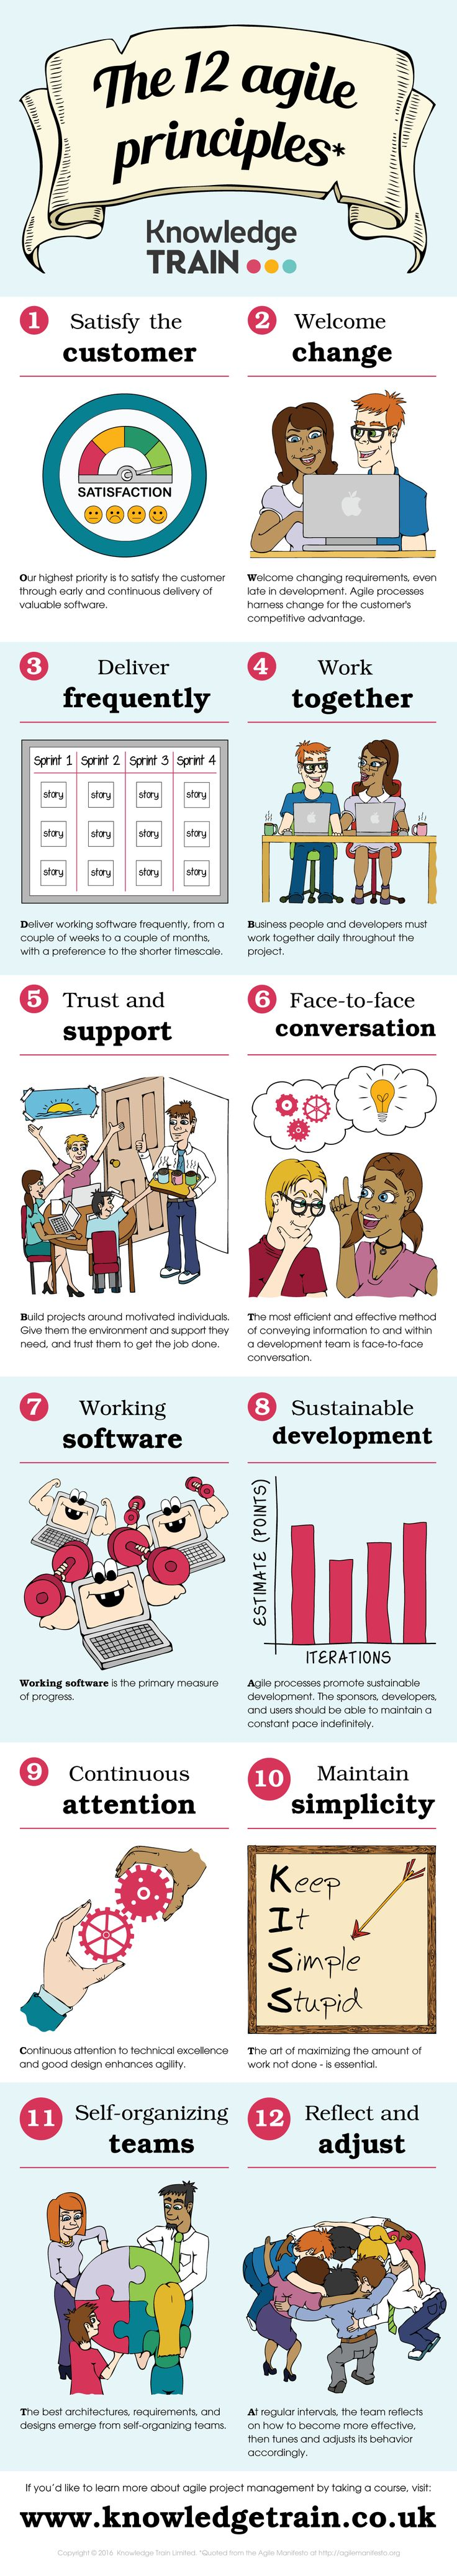 Download the 12 agile principles infographic and FREE poster for your office! #agile #project #management #principles